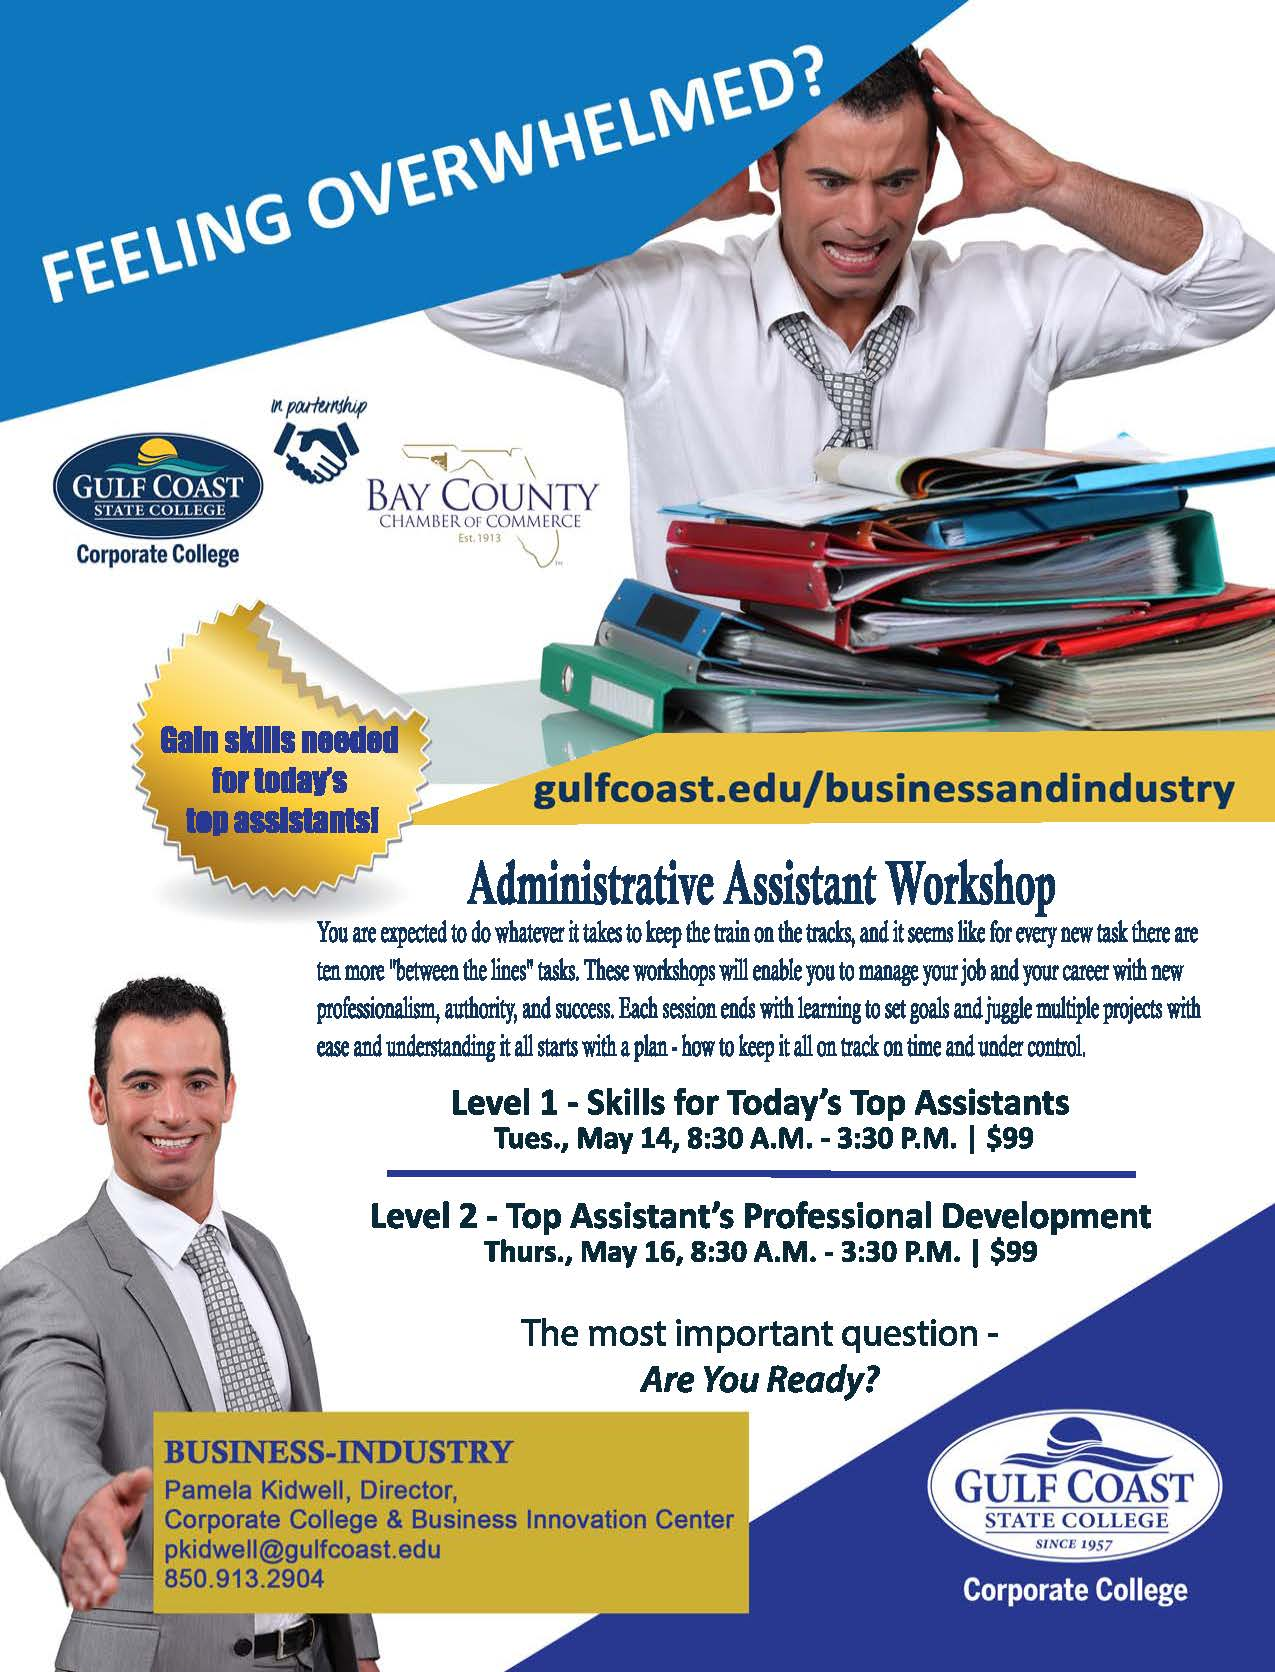 The Administrative Assistant workshop offers the exciting opportunity to learn new, practical skills to help advance your career.